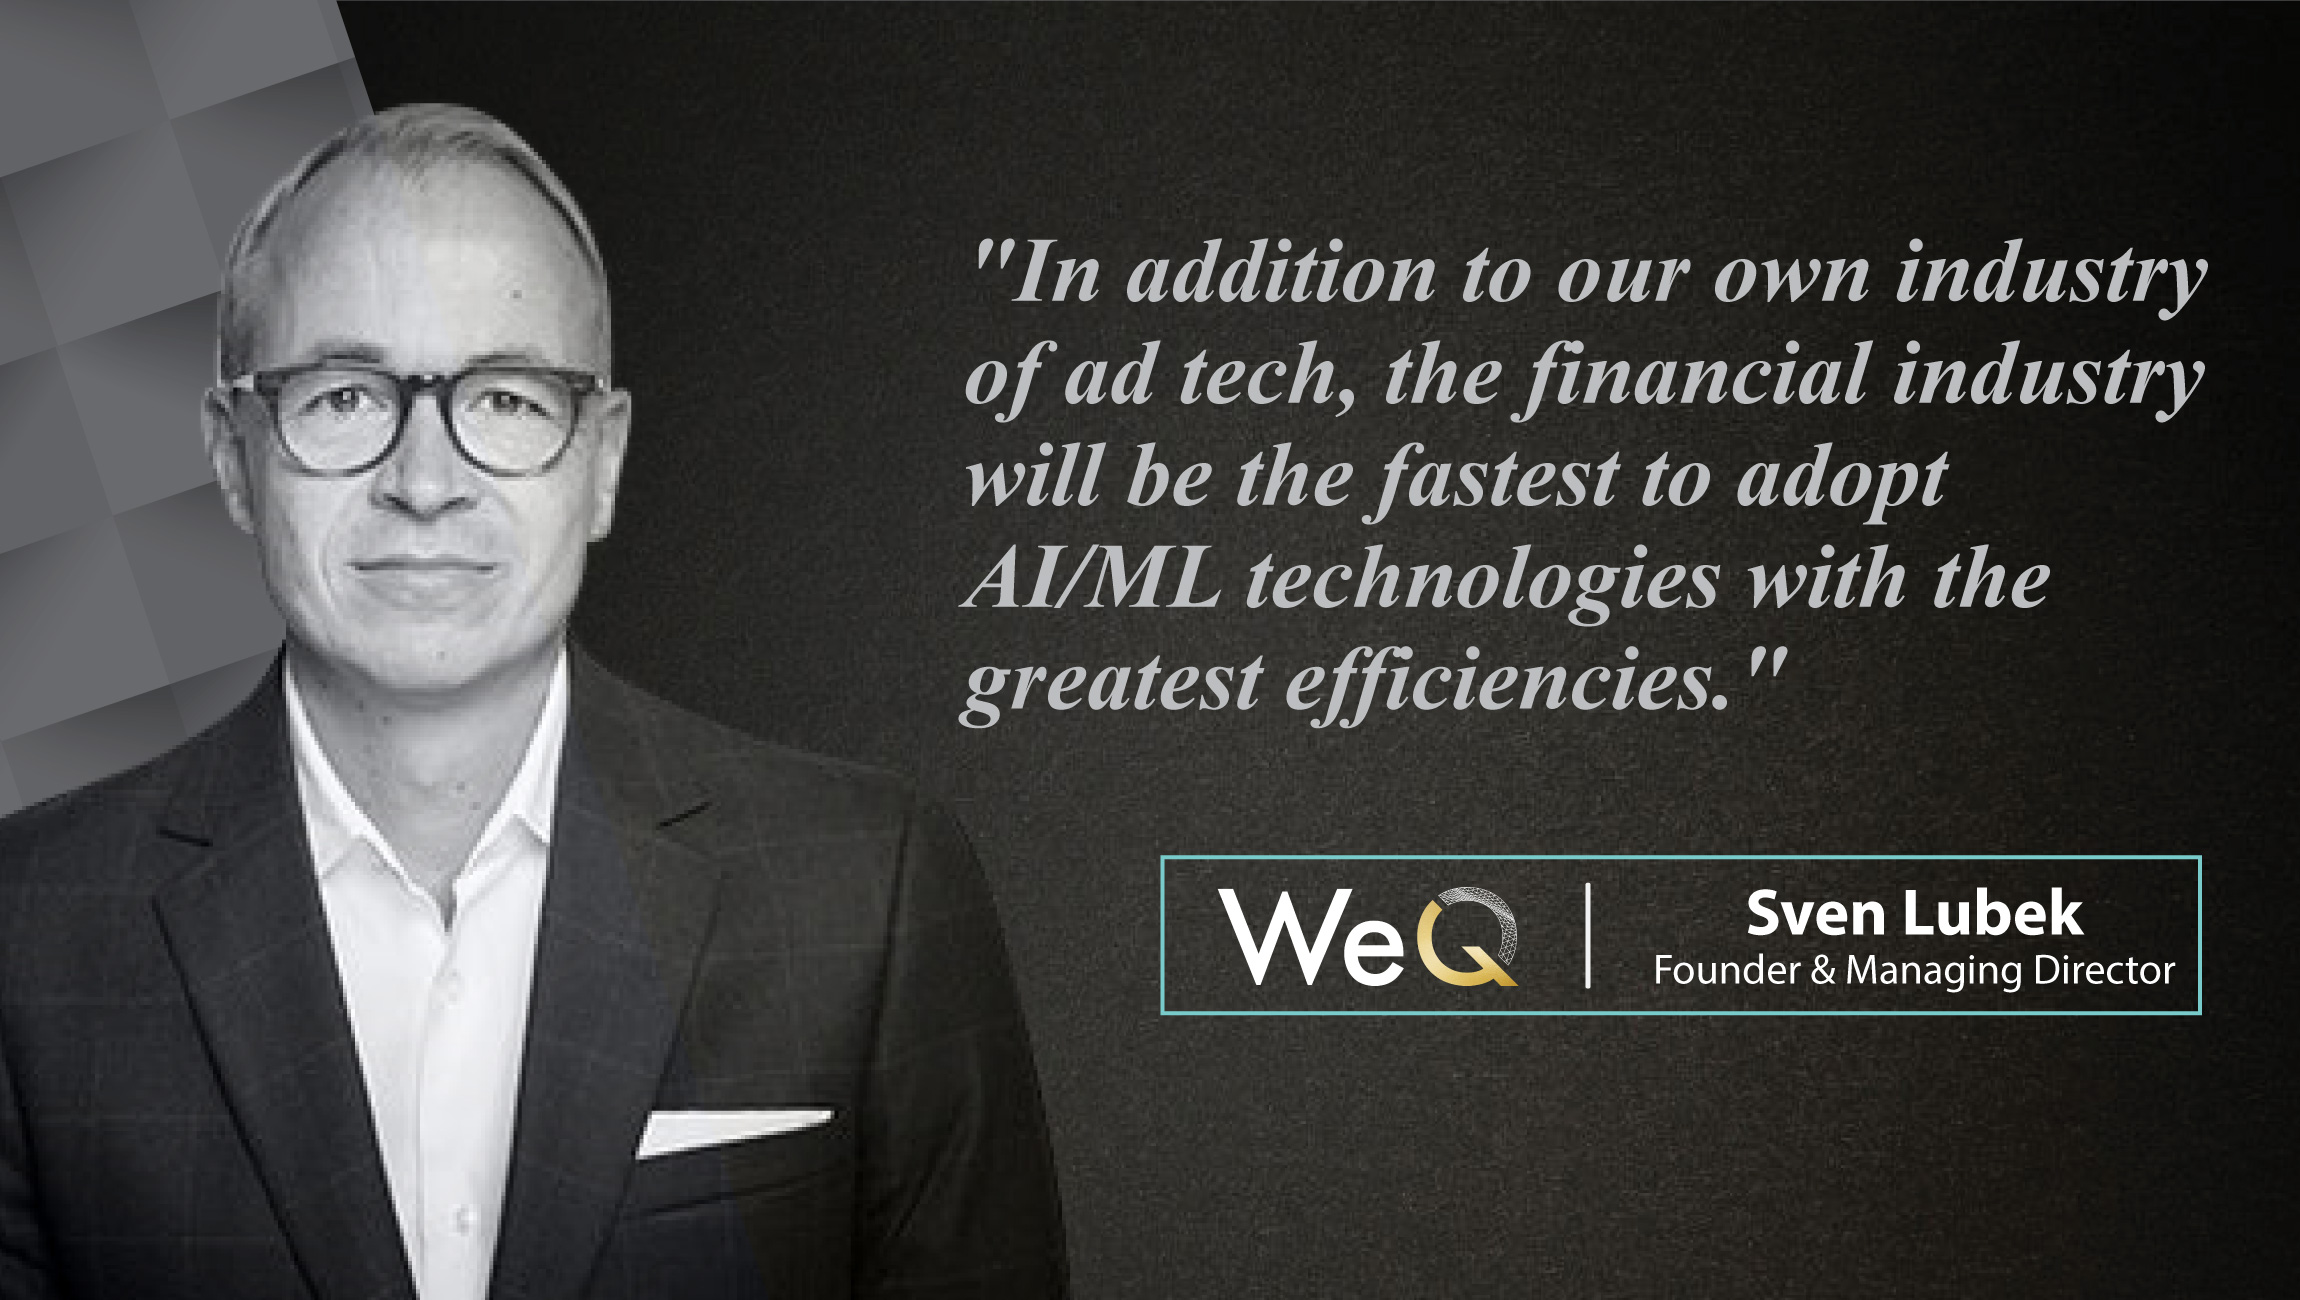 Interview With Sven Lubek, Managing Director at WeQ_cue card